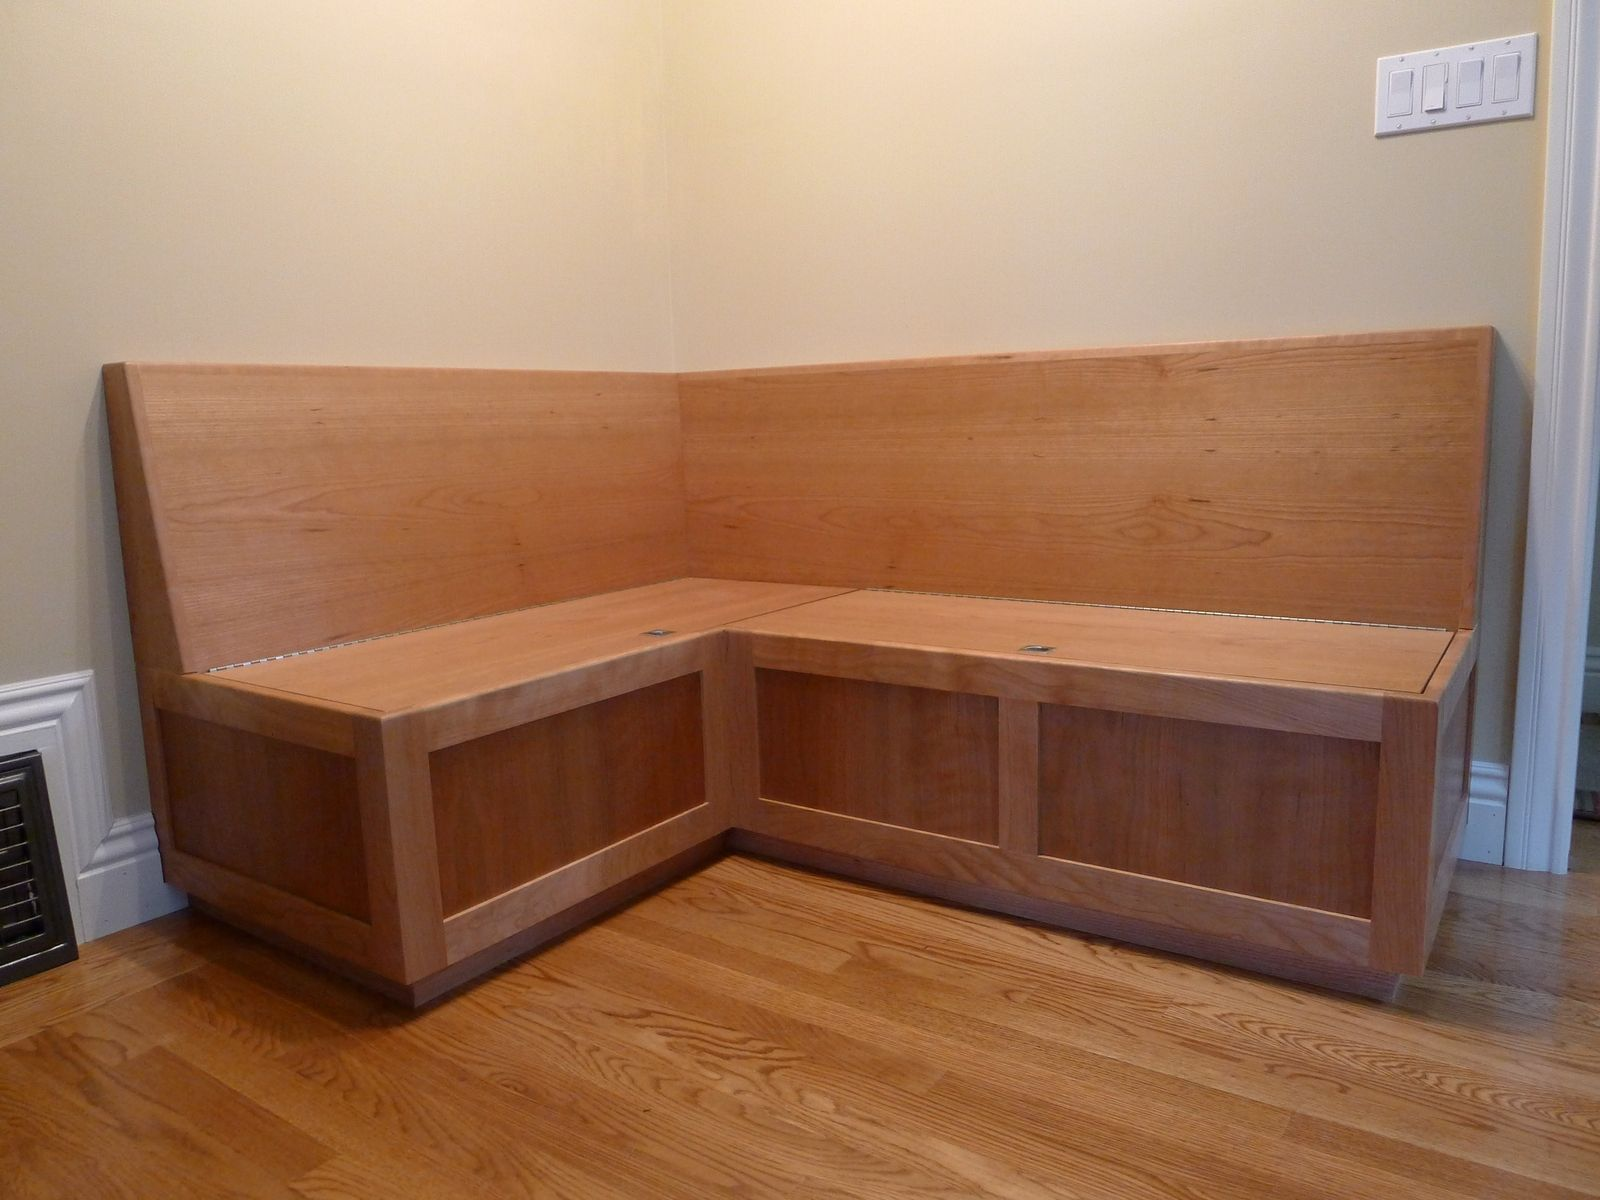 Custom cherry banquette by near west - Kitchen bench diy ...